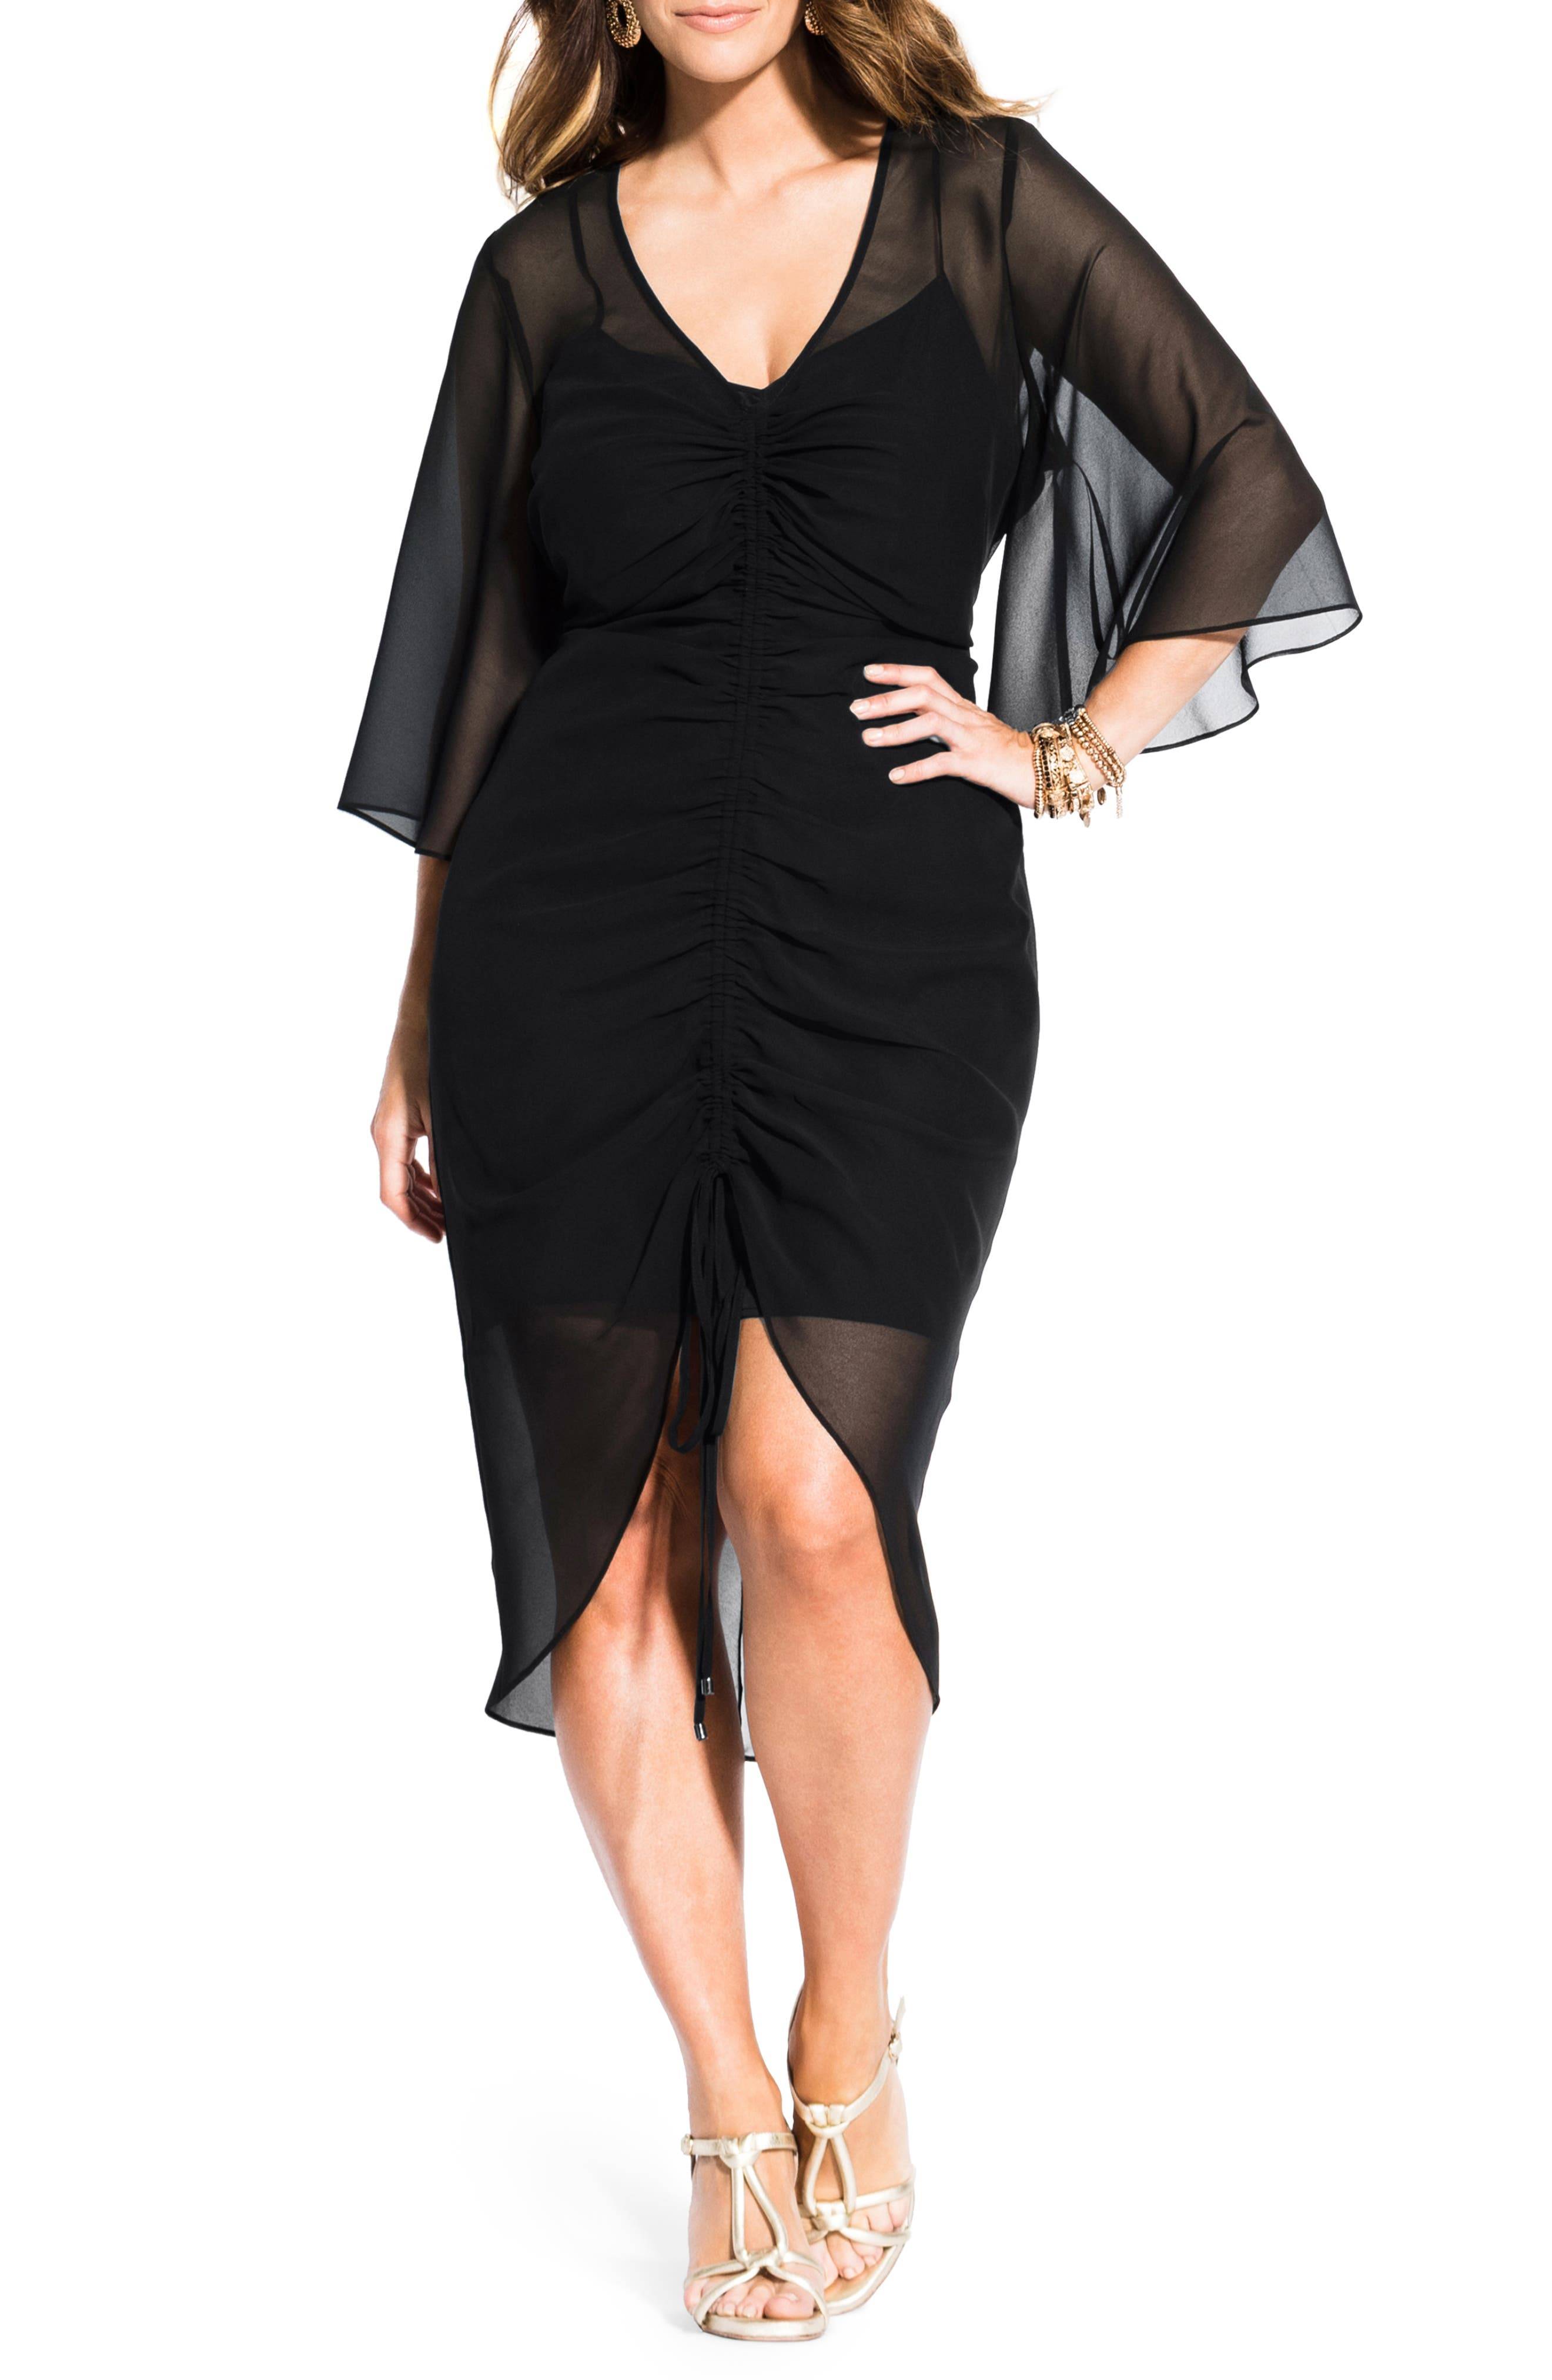 Plus Size City Chic Bella Vacanza Collection Drawn Up Ruched Party Dress, Black